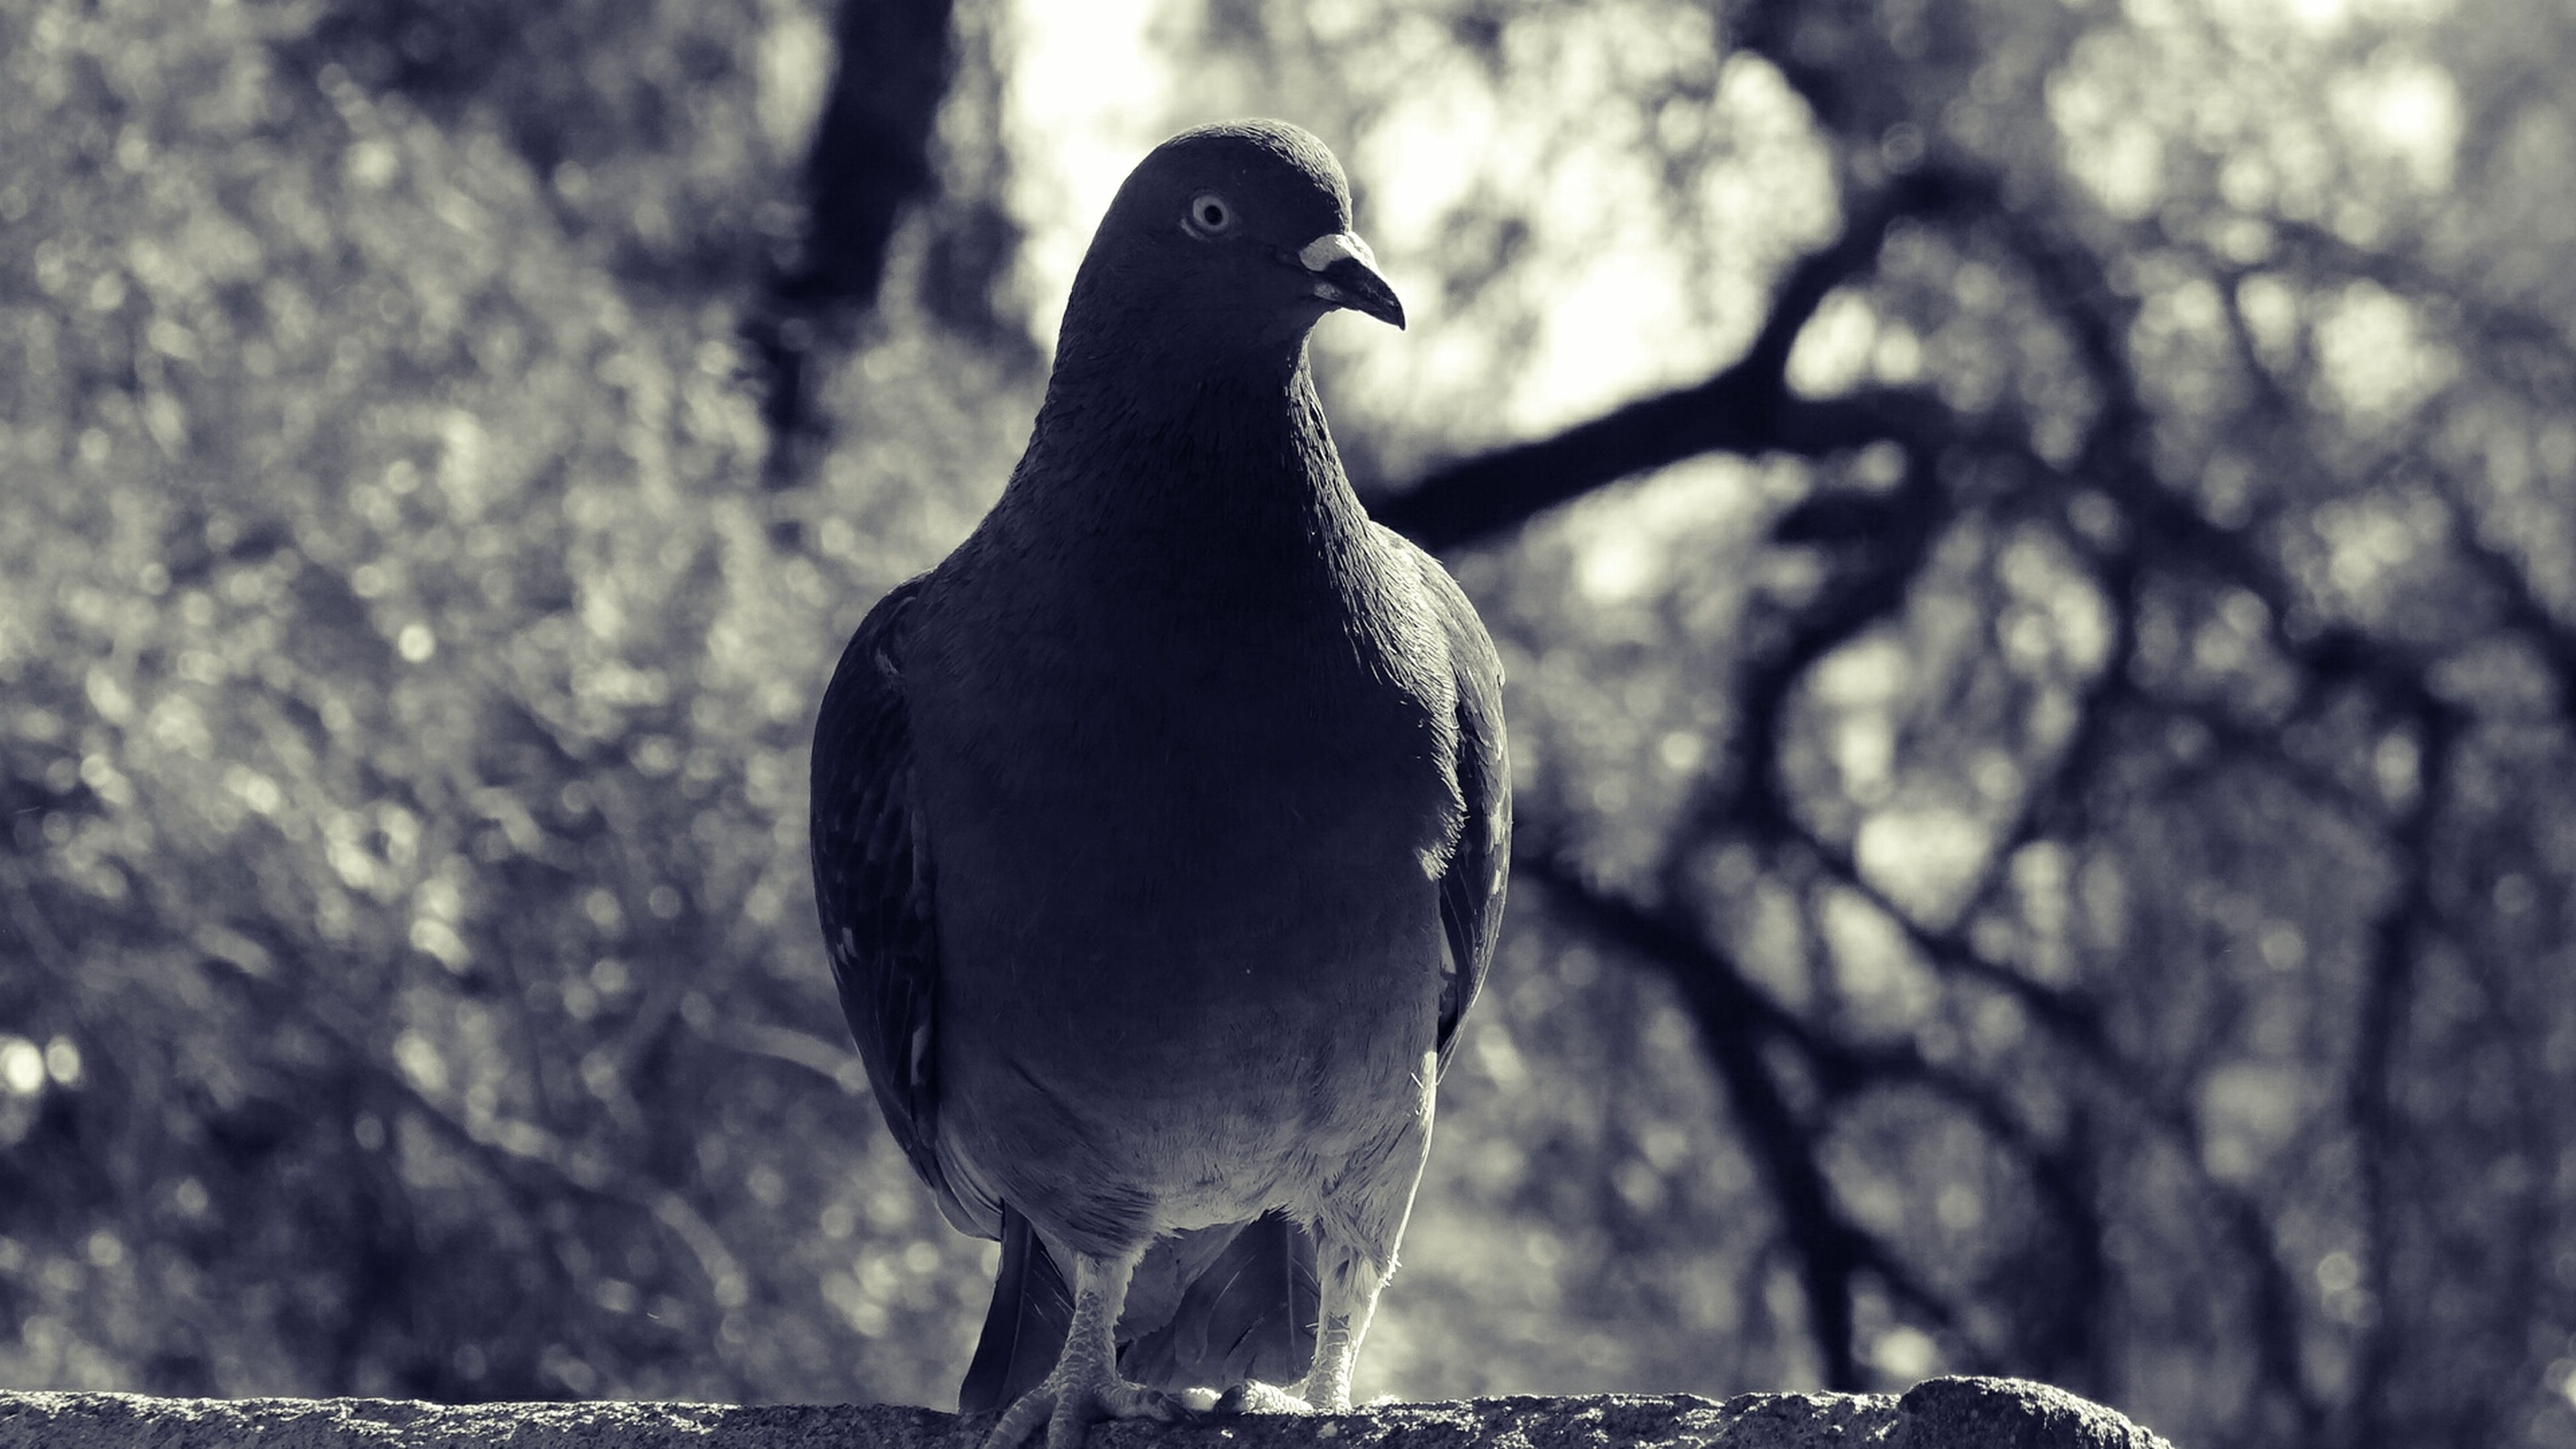 animal themes, one animal, animals in the wild, wildlife, bird, focus on foreground, perching, close-up, branch, nature, beak, full length, tree, outdoors, zoology, side view, day, animal head, no people, looking away